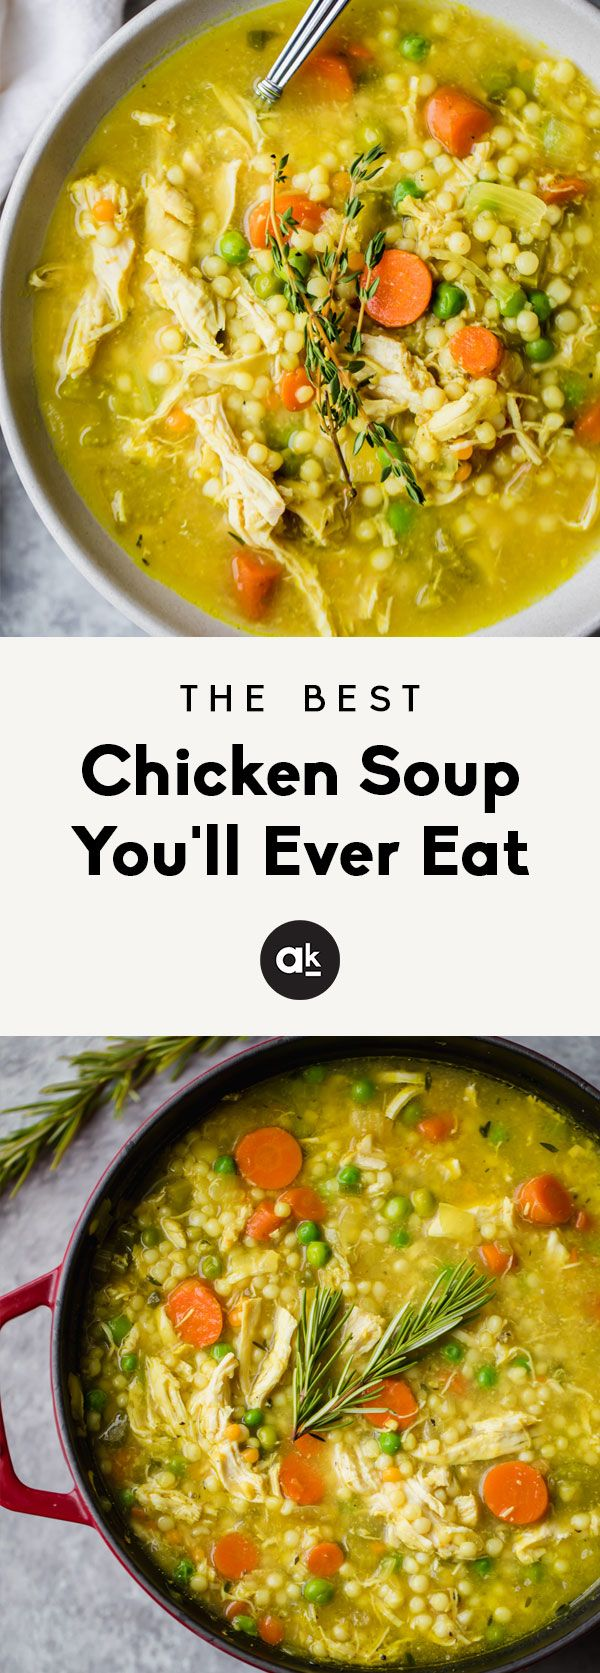 The Best Chicken Soup You Ll Ever Eat Ambitious Kitchen